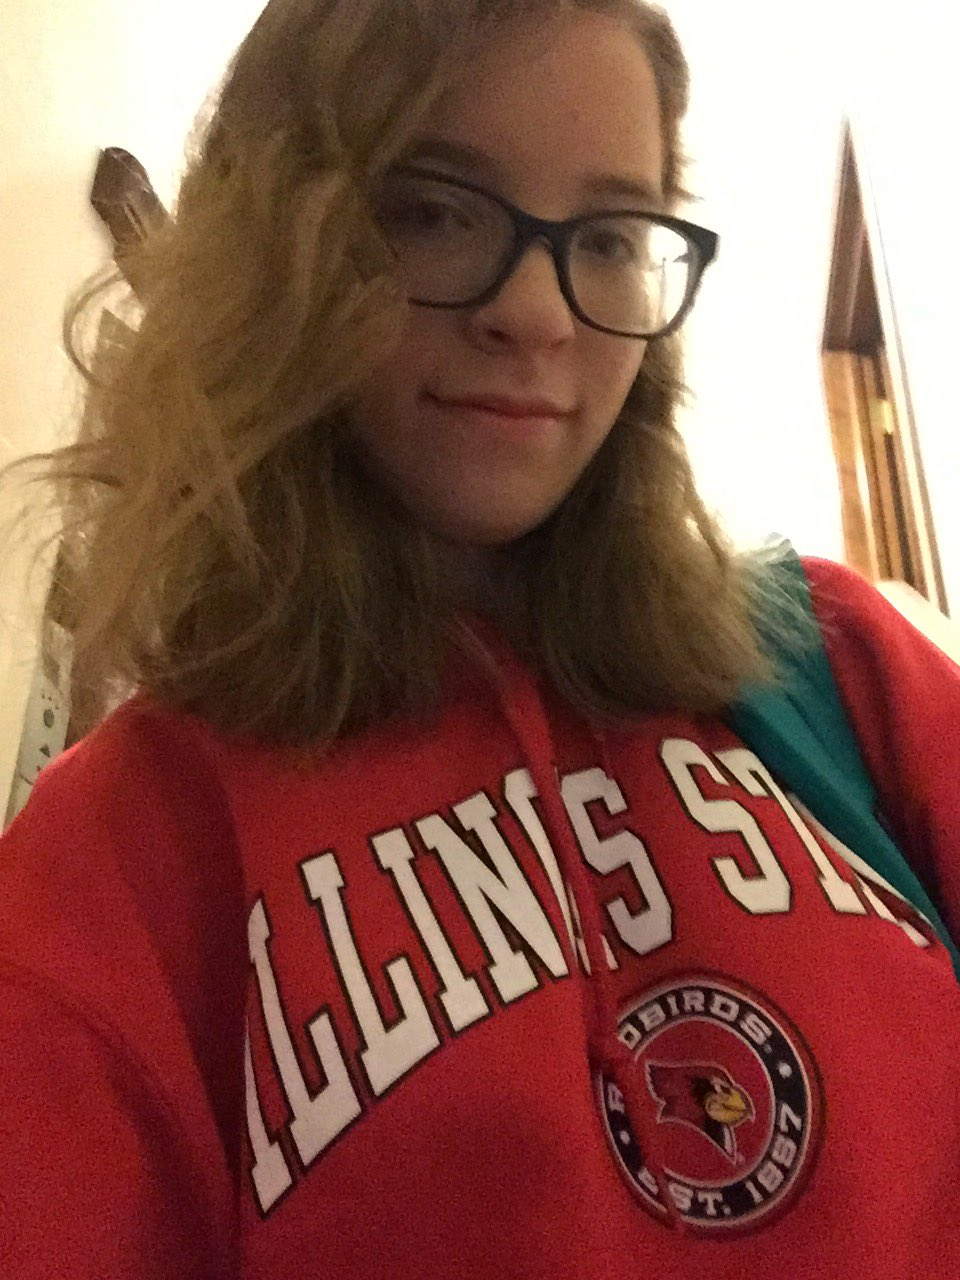 I've picked ISU for the fall! I'm #RedbirdSetGo! Are you? Tell the world you'll be a Redbird at Illinois State -  https://t.co/6hX173JXsV https://t.co/0E3goC1G8p